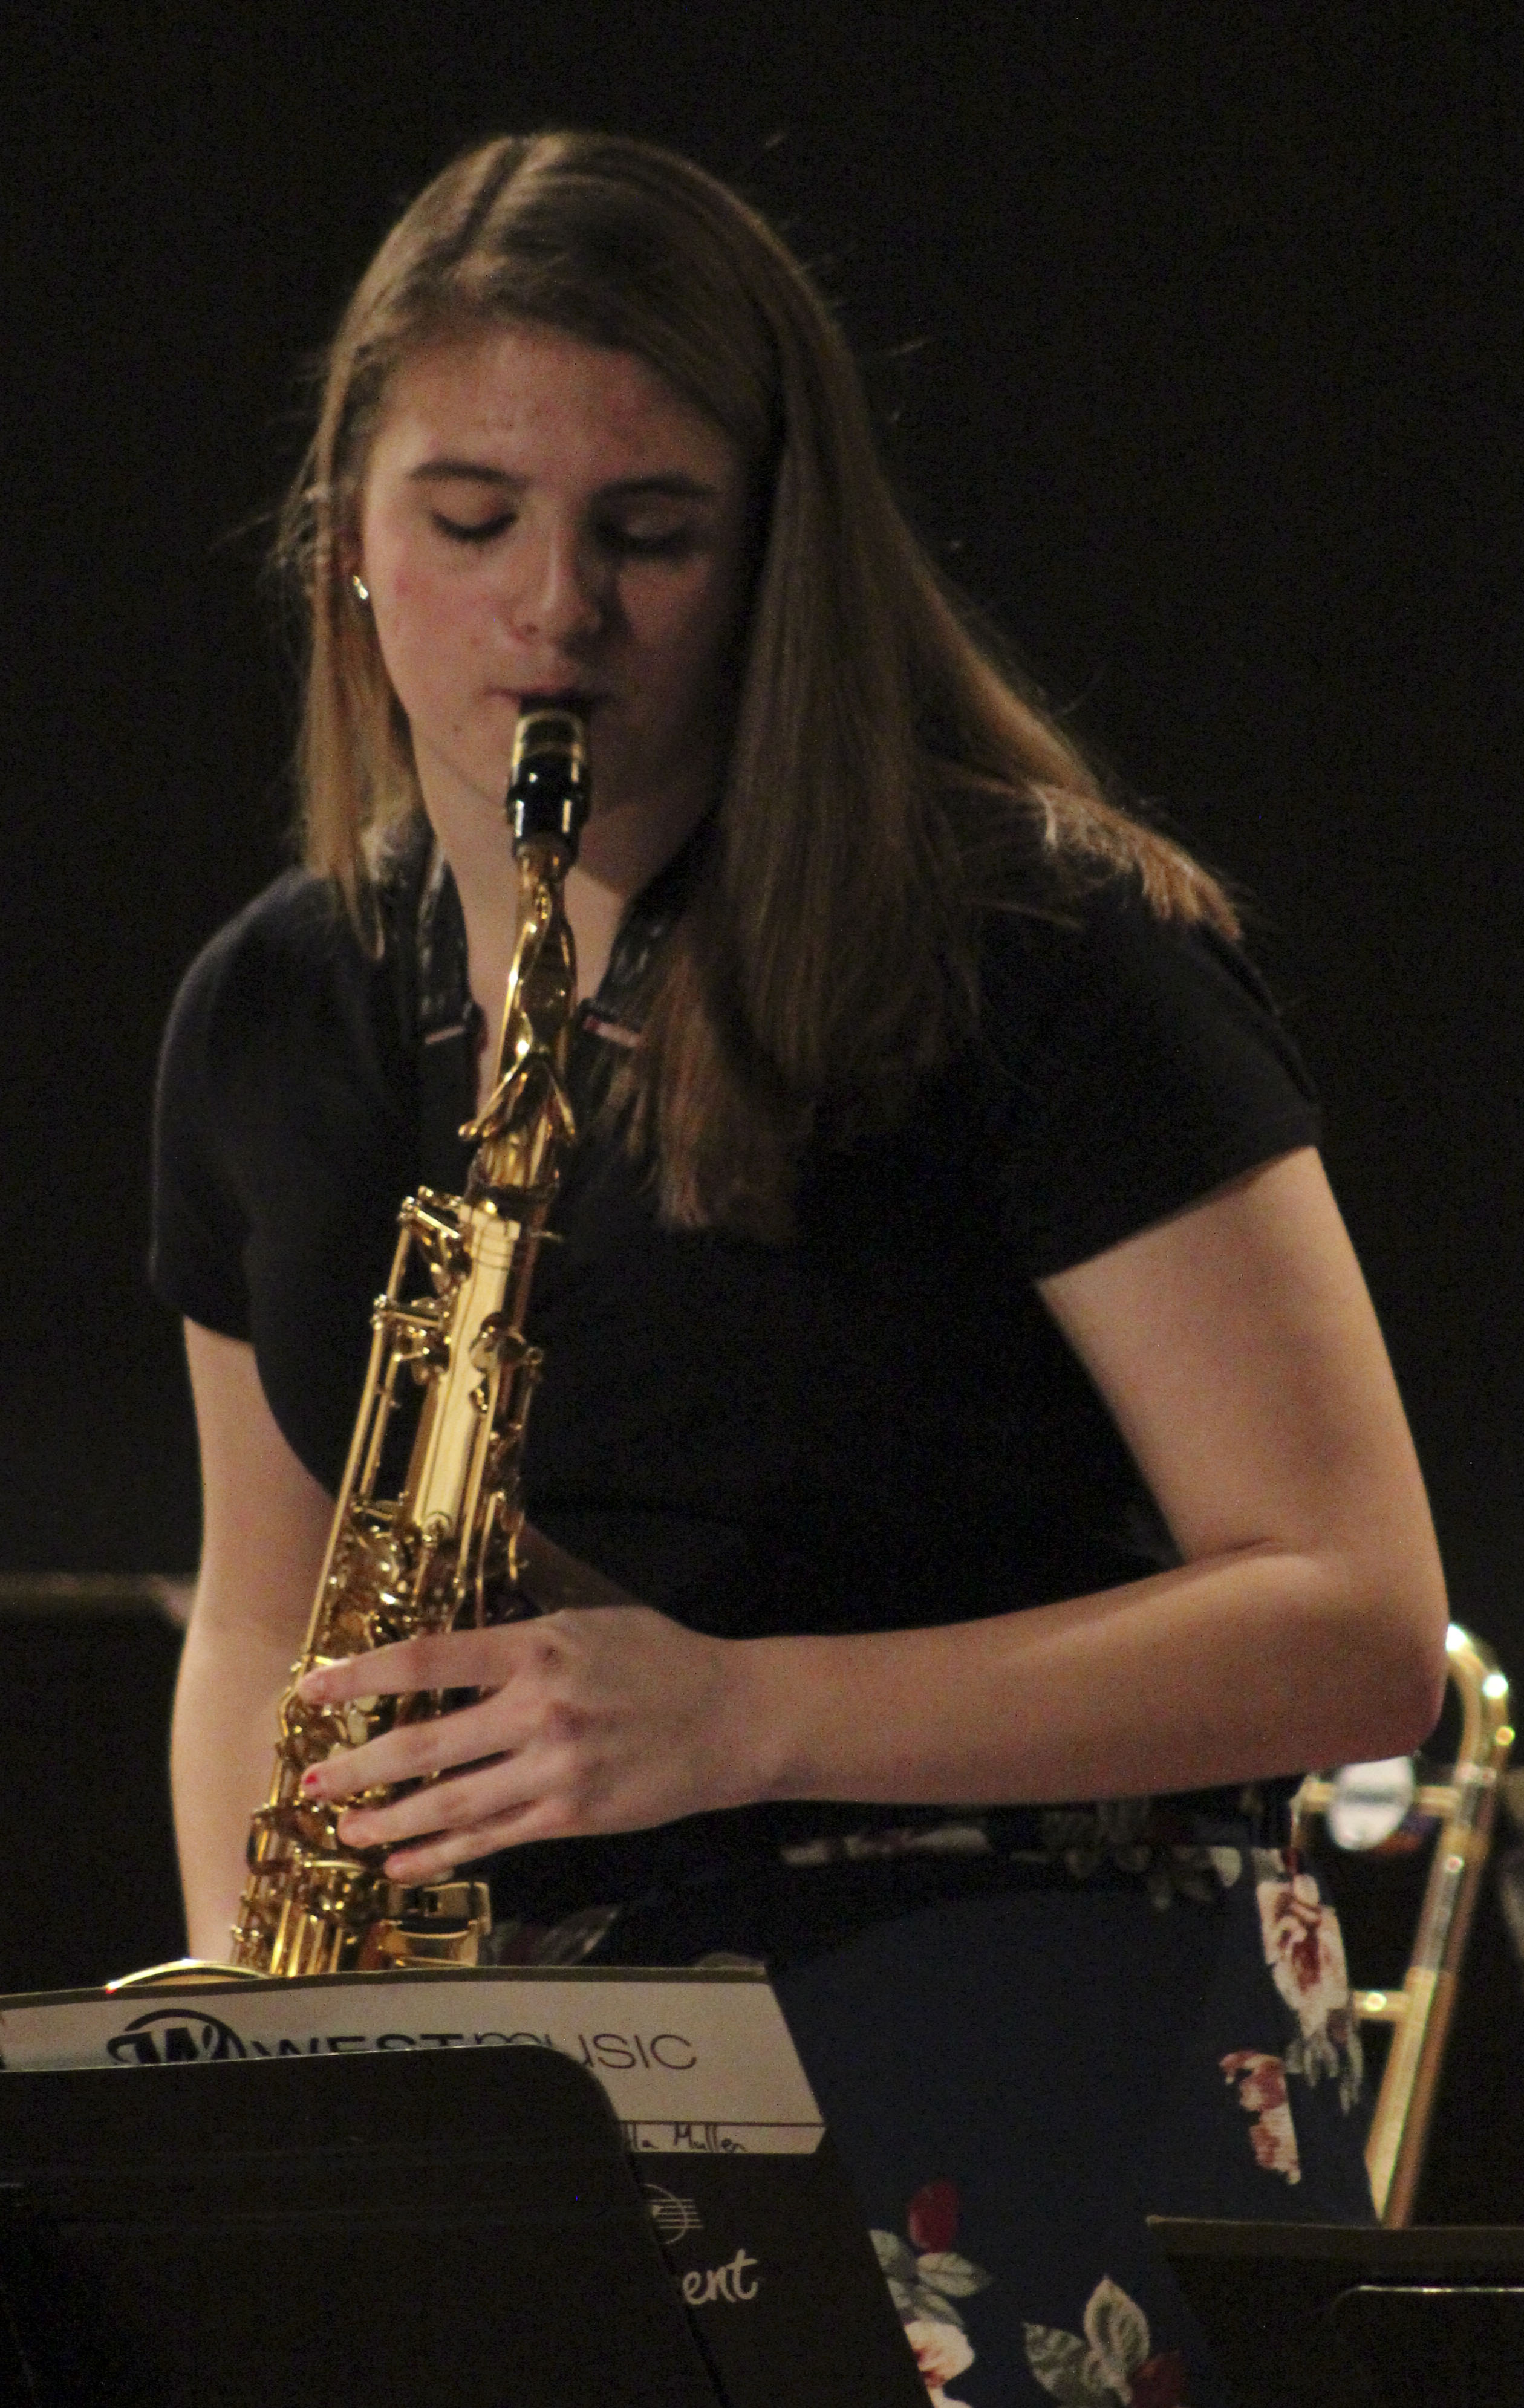 Bella Mullen plays a sax solo with the Monticello jazz ensemble during Jammin' In January.